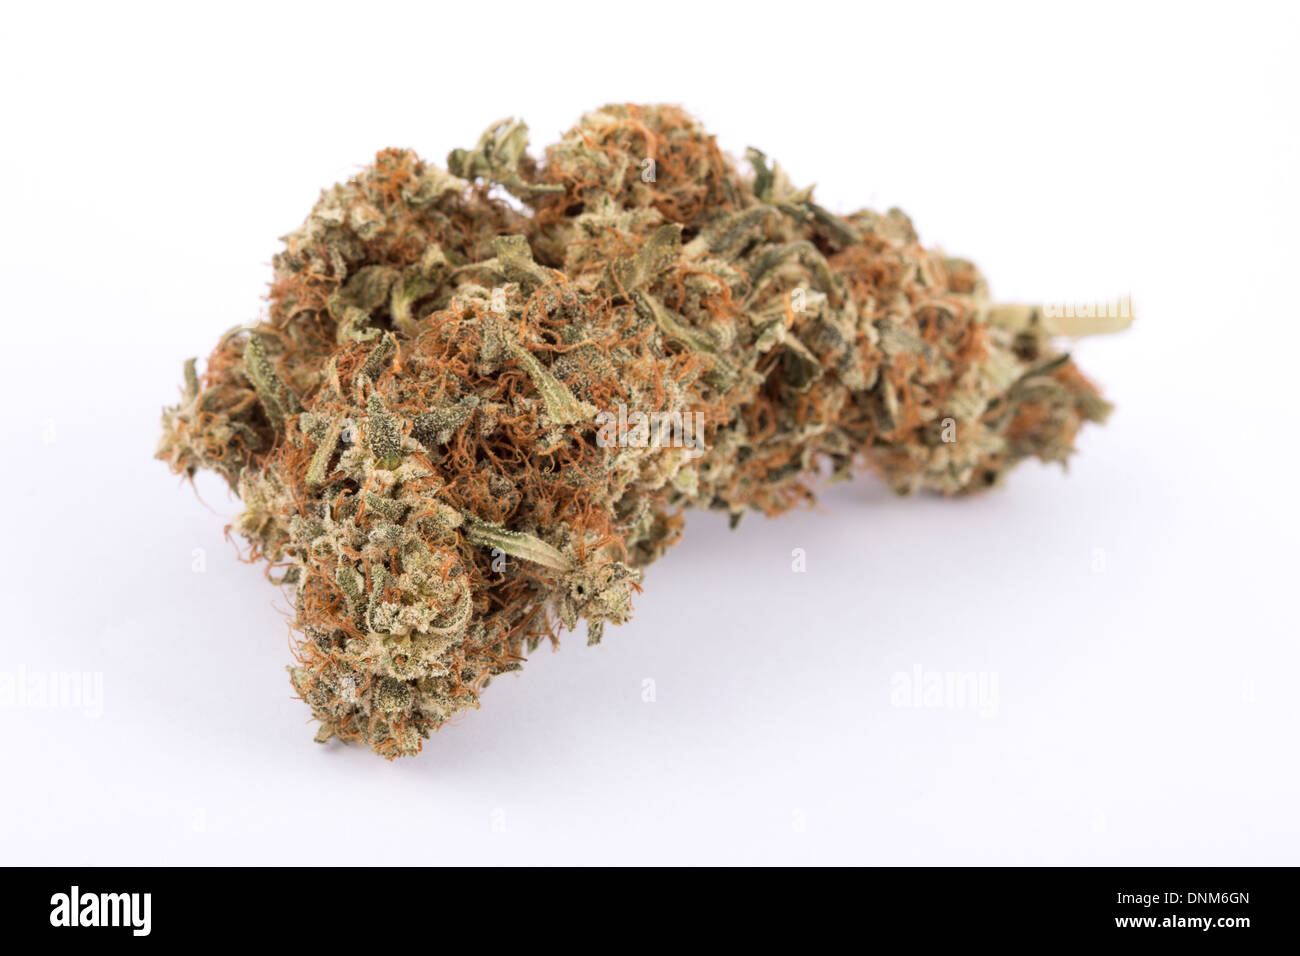 A large dried and cured high quality cannabis sativa bud shot on a seamless white background. - Stock Image